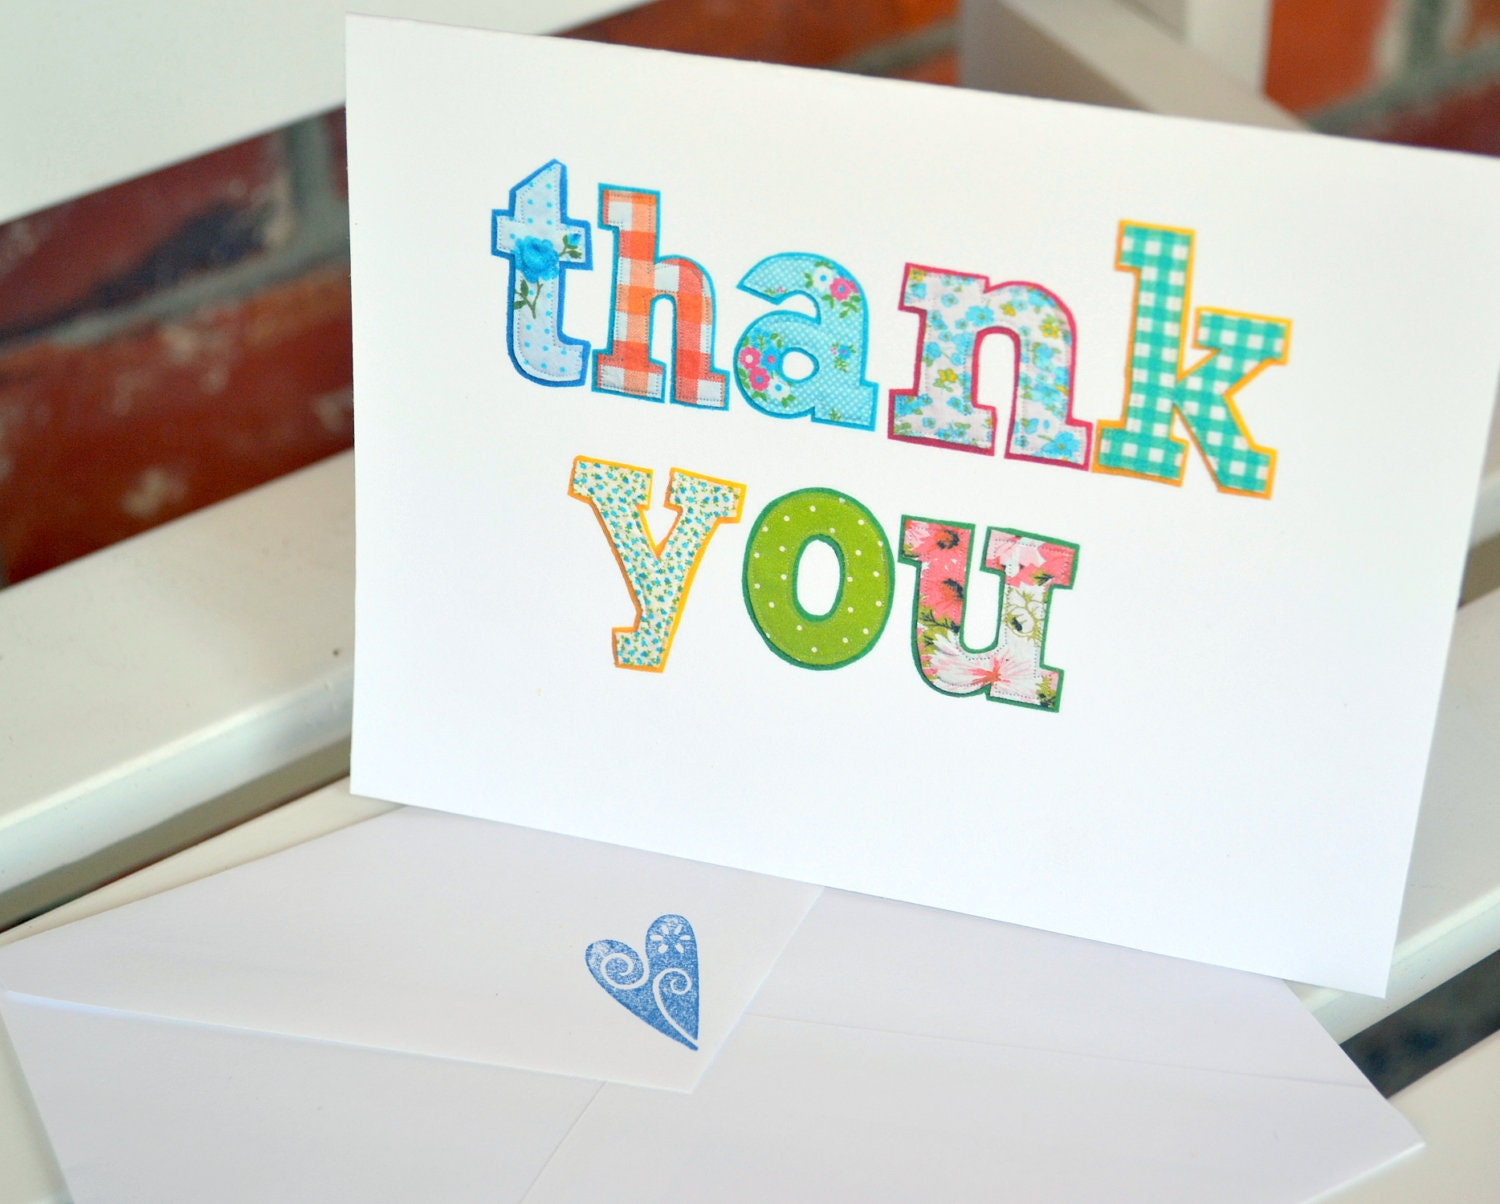 Bridal Shower Thank You Card Wording For Mother In Law : ... you card (set of 10)- thank you note- pretty thank you card- bright